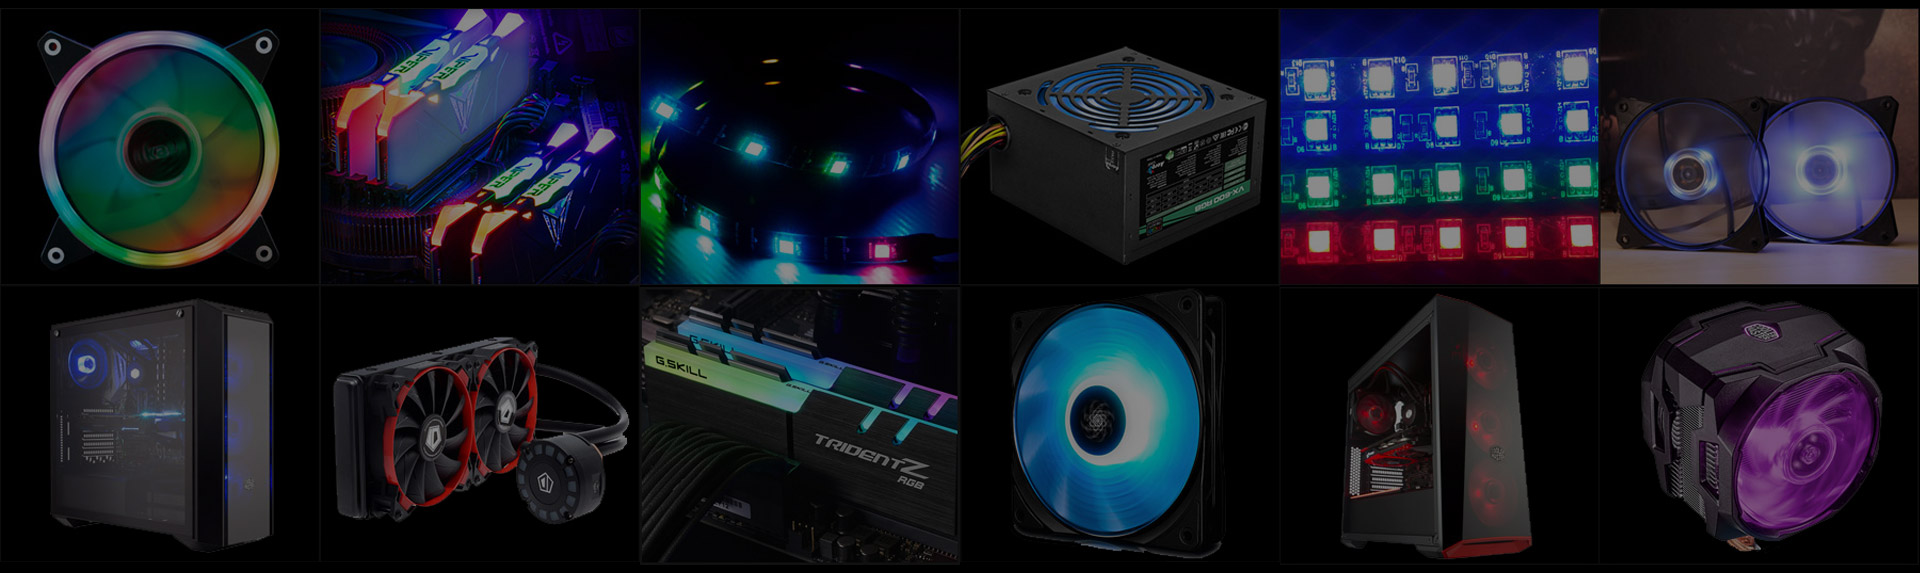 RGB lit devices such as: case fans, memory sticks, led strips, power supplies, cases, radiator coolers and CPU coolers